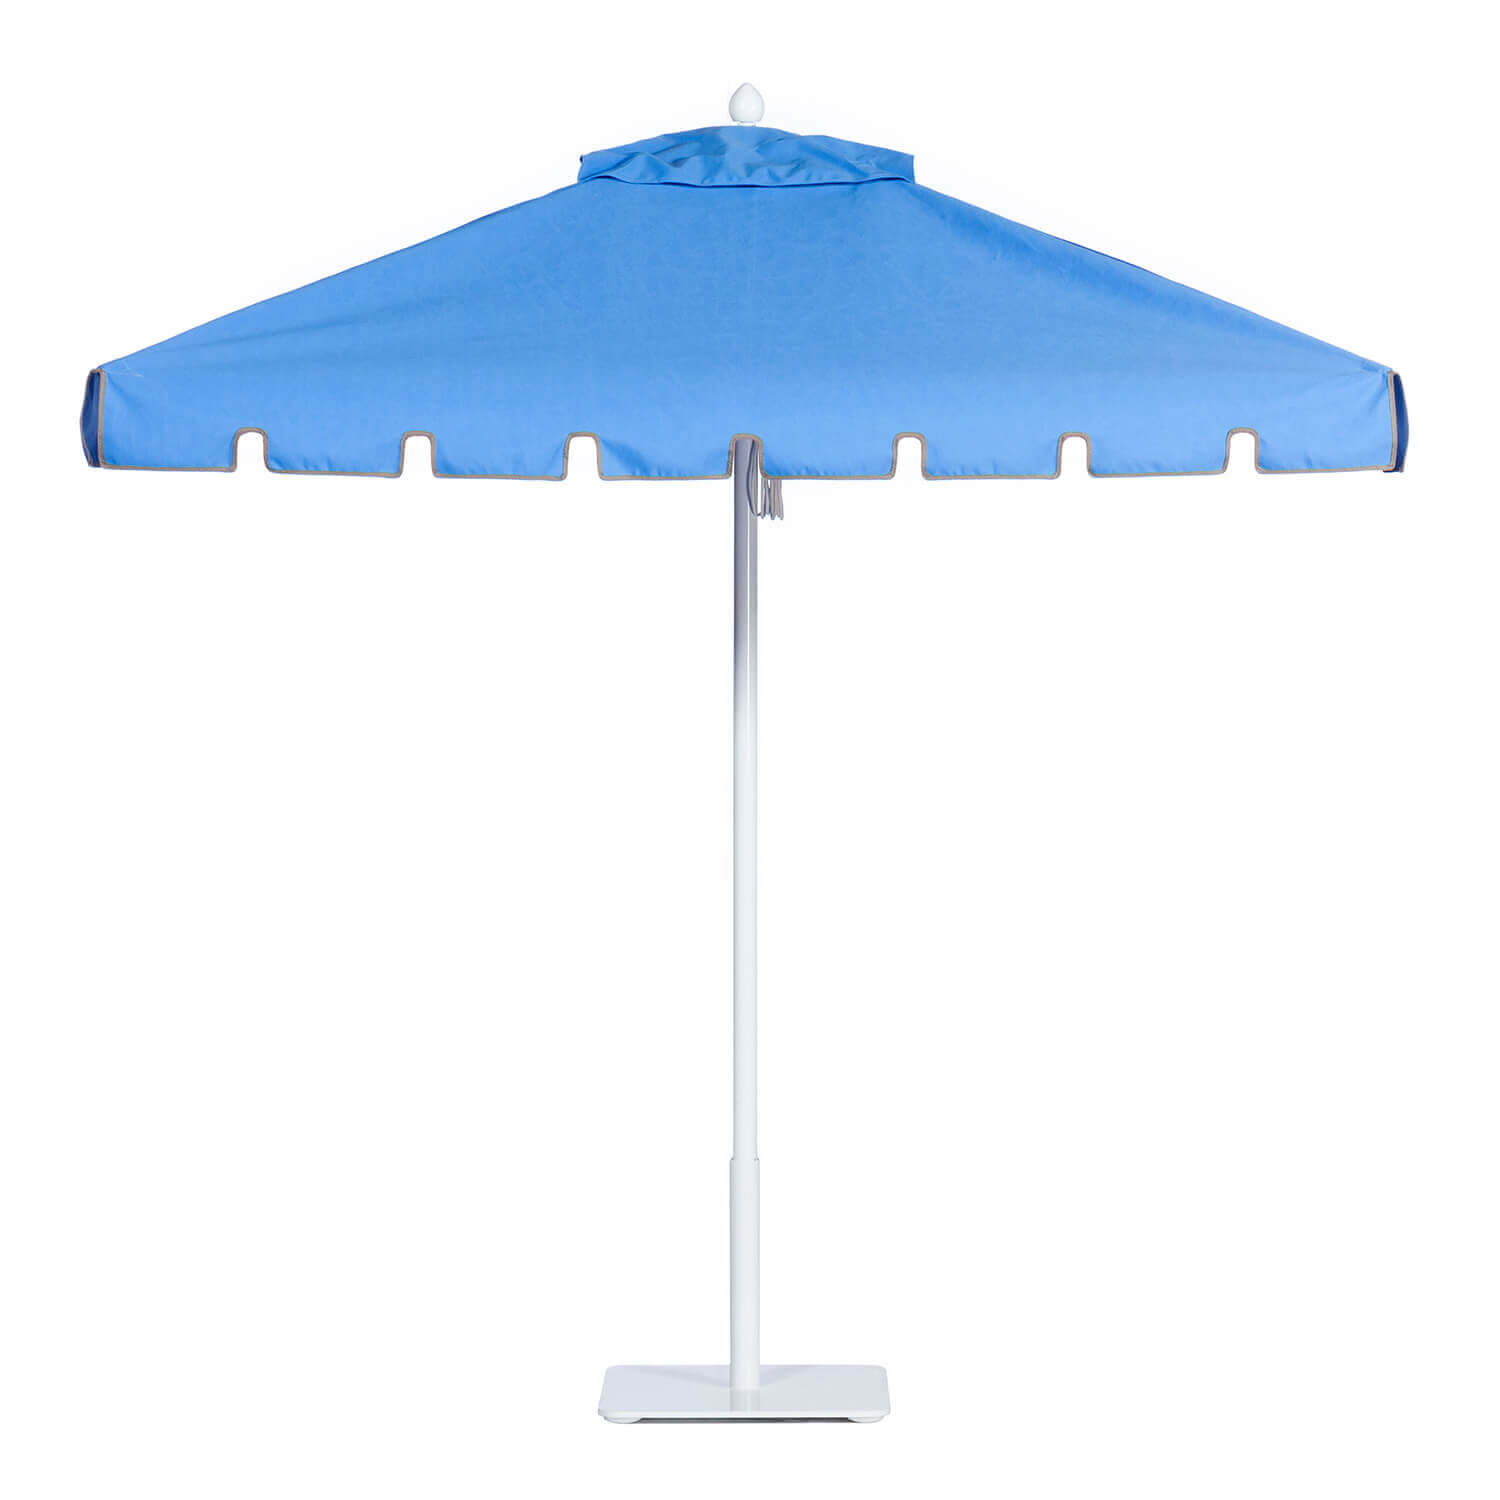 Tahitian Blue Umbrella Image